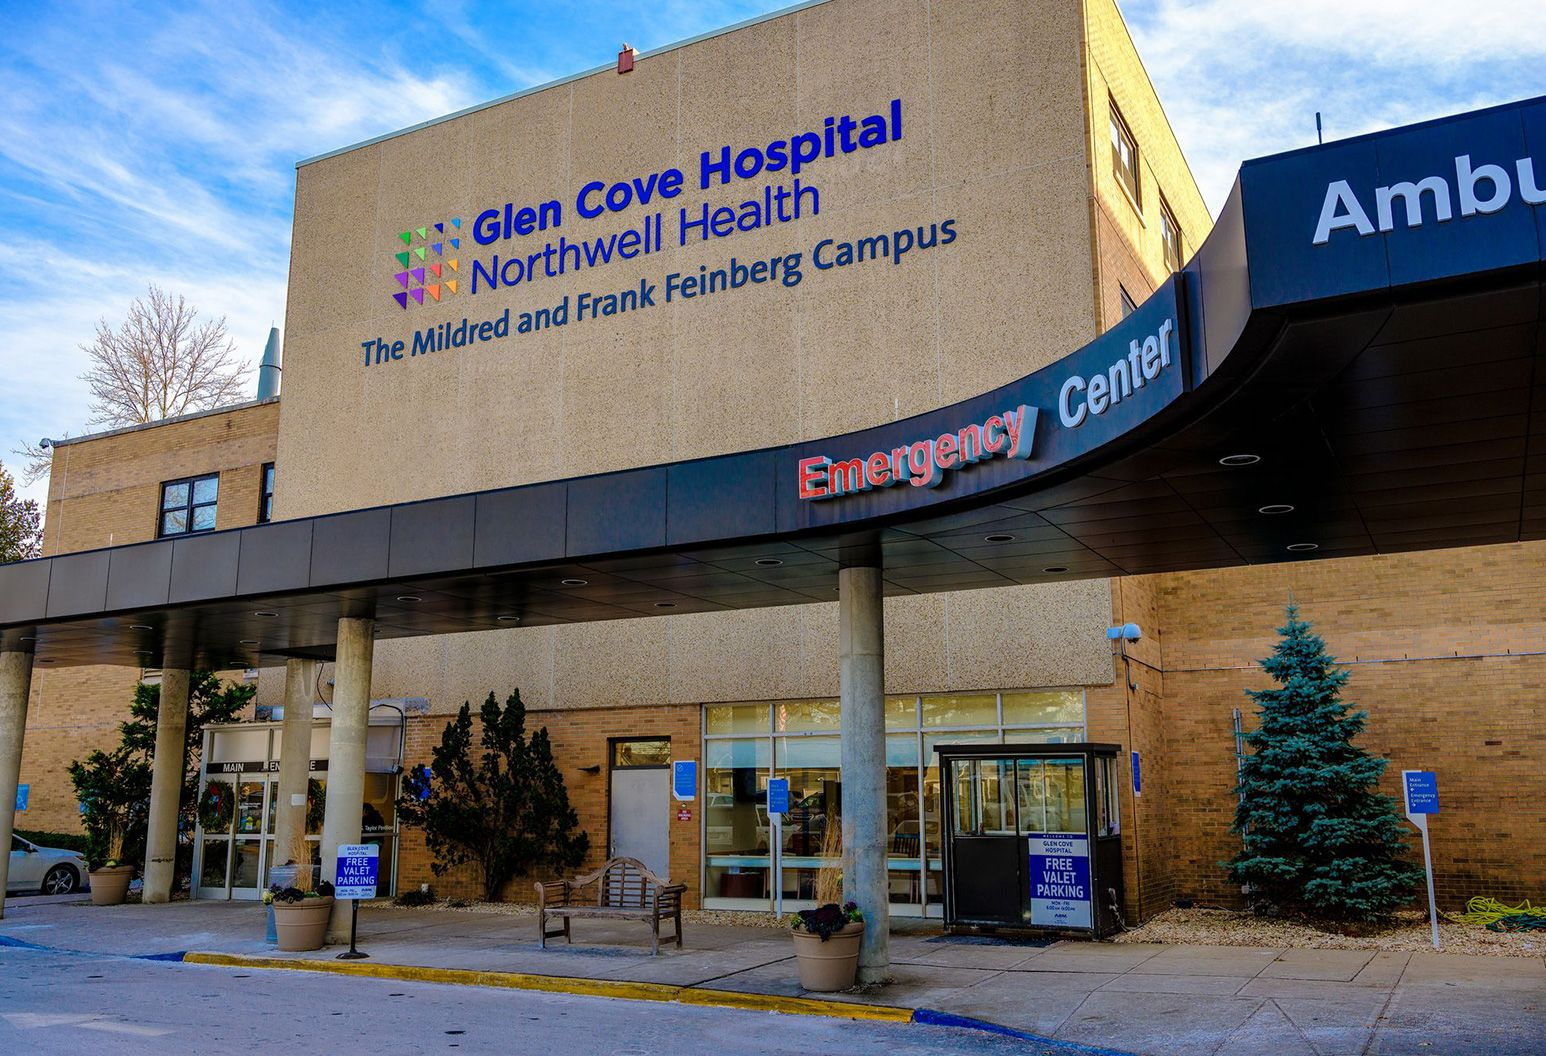 Exterior  of Glen Cove Hospital focusing on the Emergency entrance.